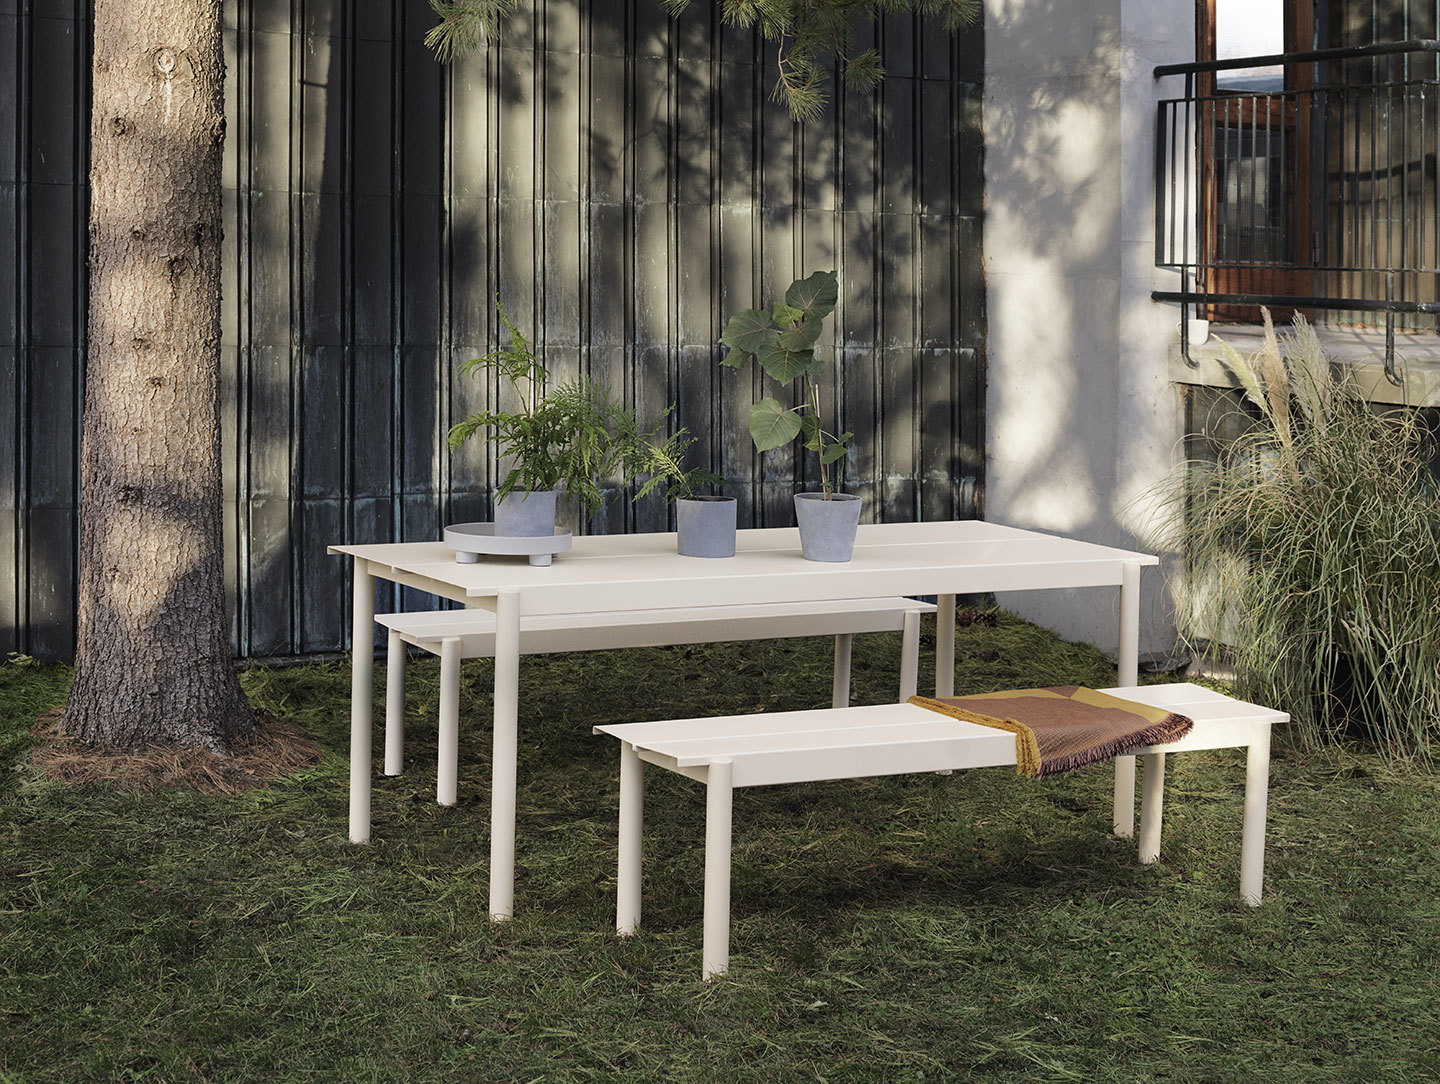 Muuto Linear Steel Outdoor Table And Bench Off White Thomas Bentzen